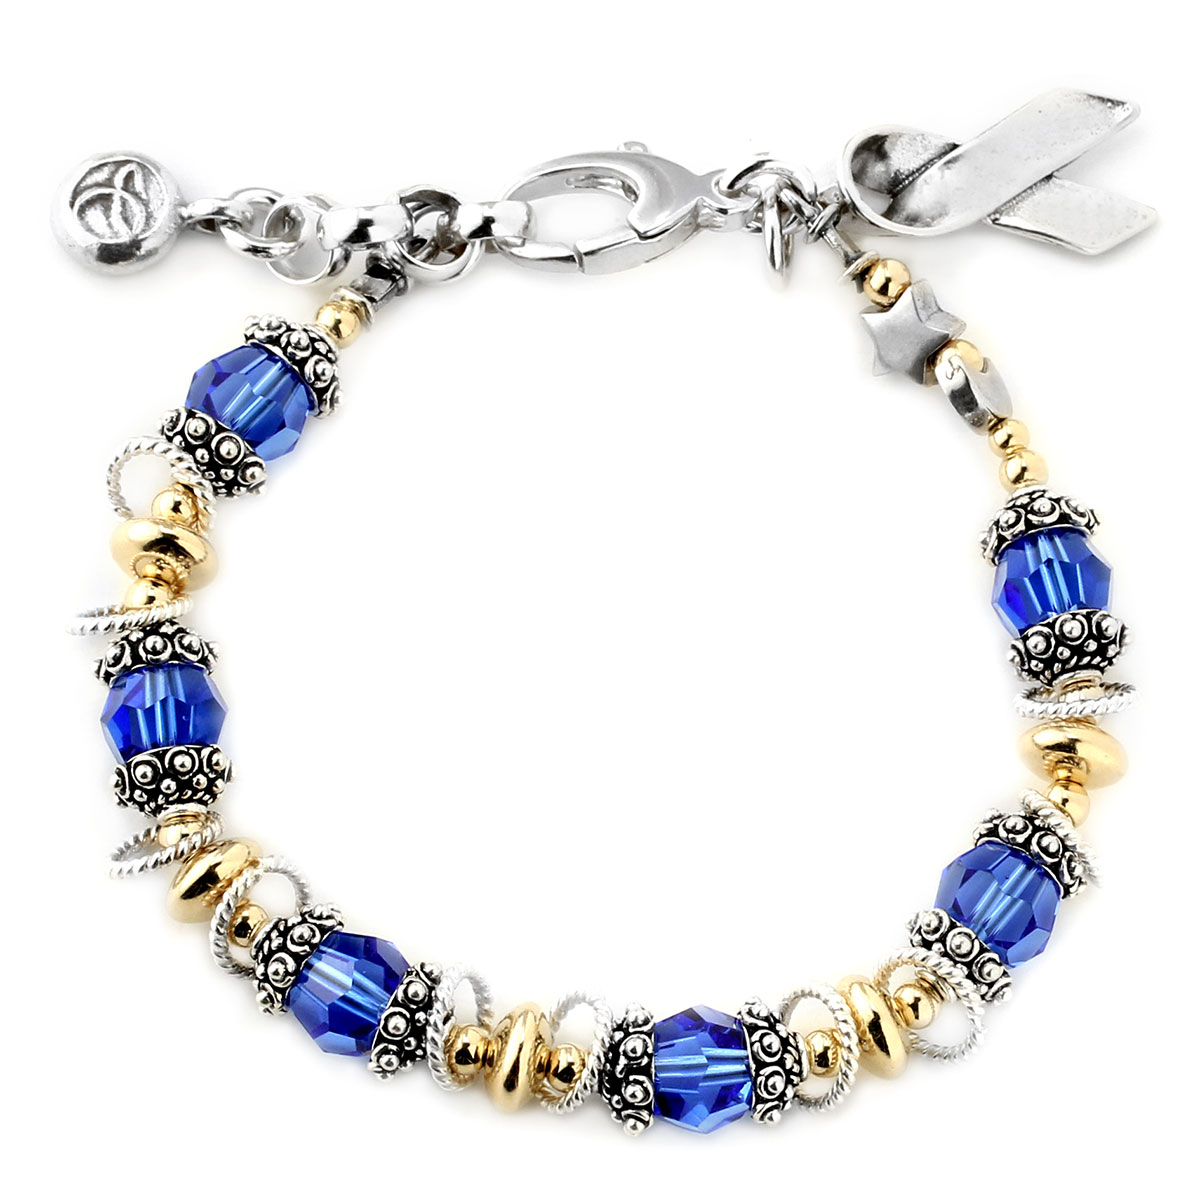 179164-Colon Cancer - Awareness Bracelet